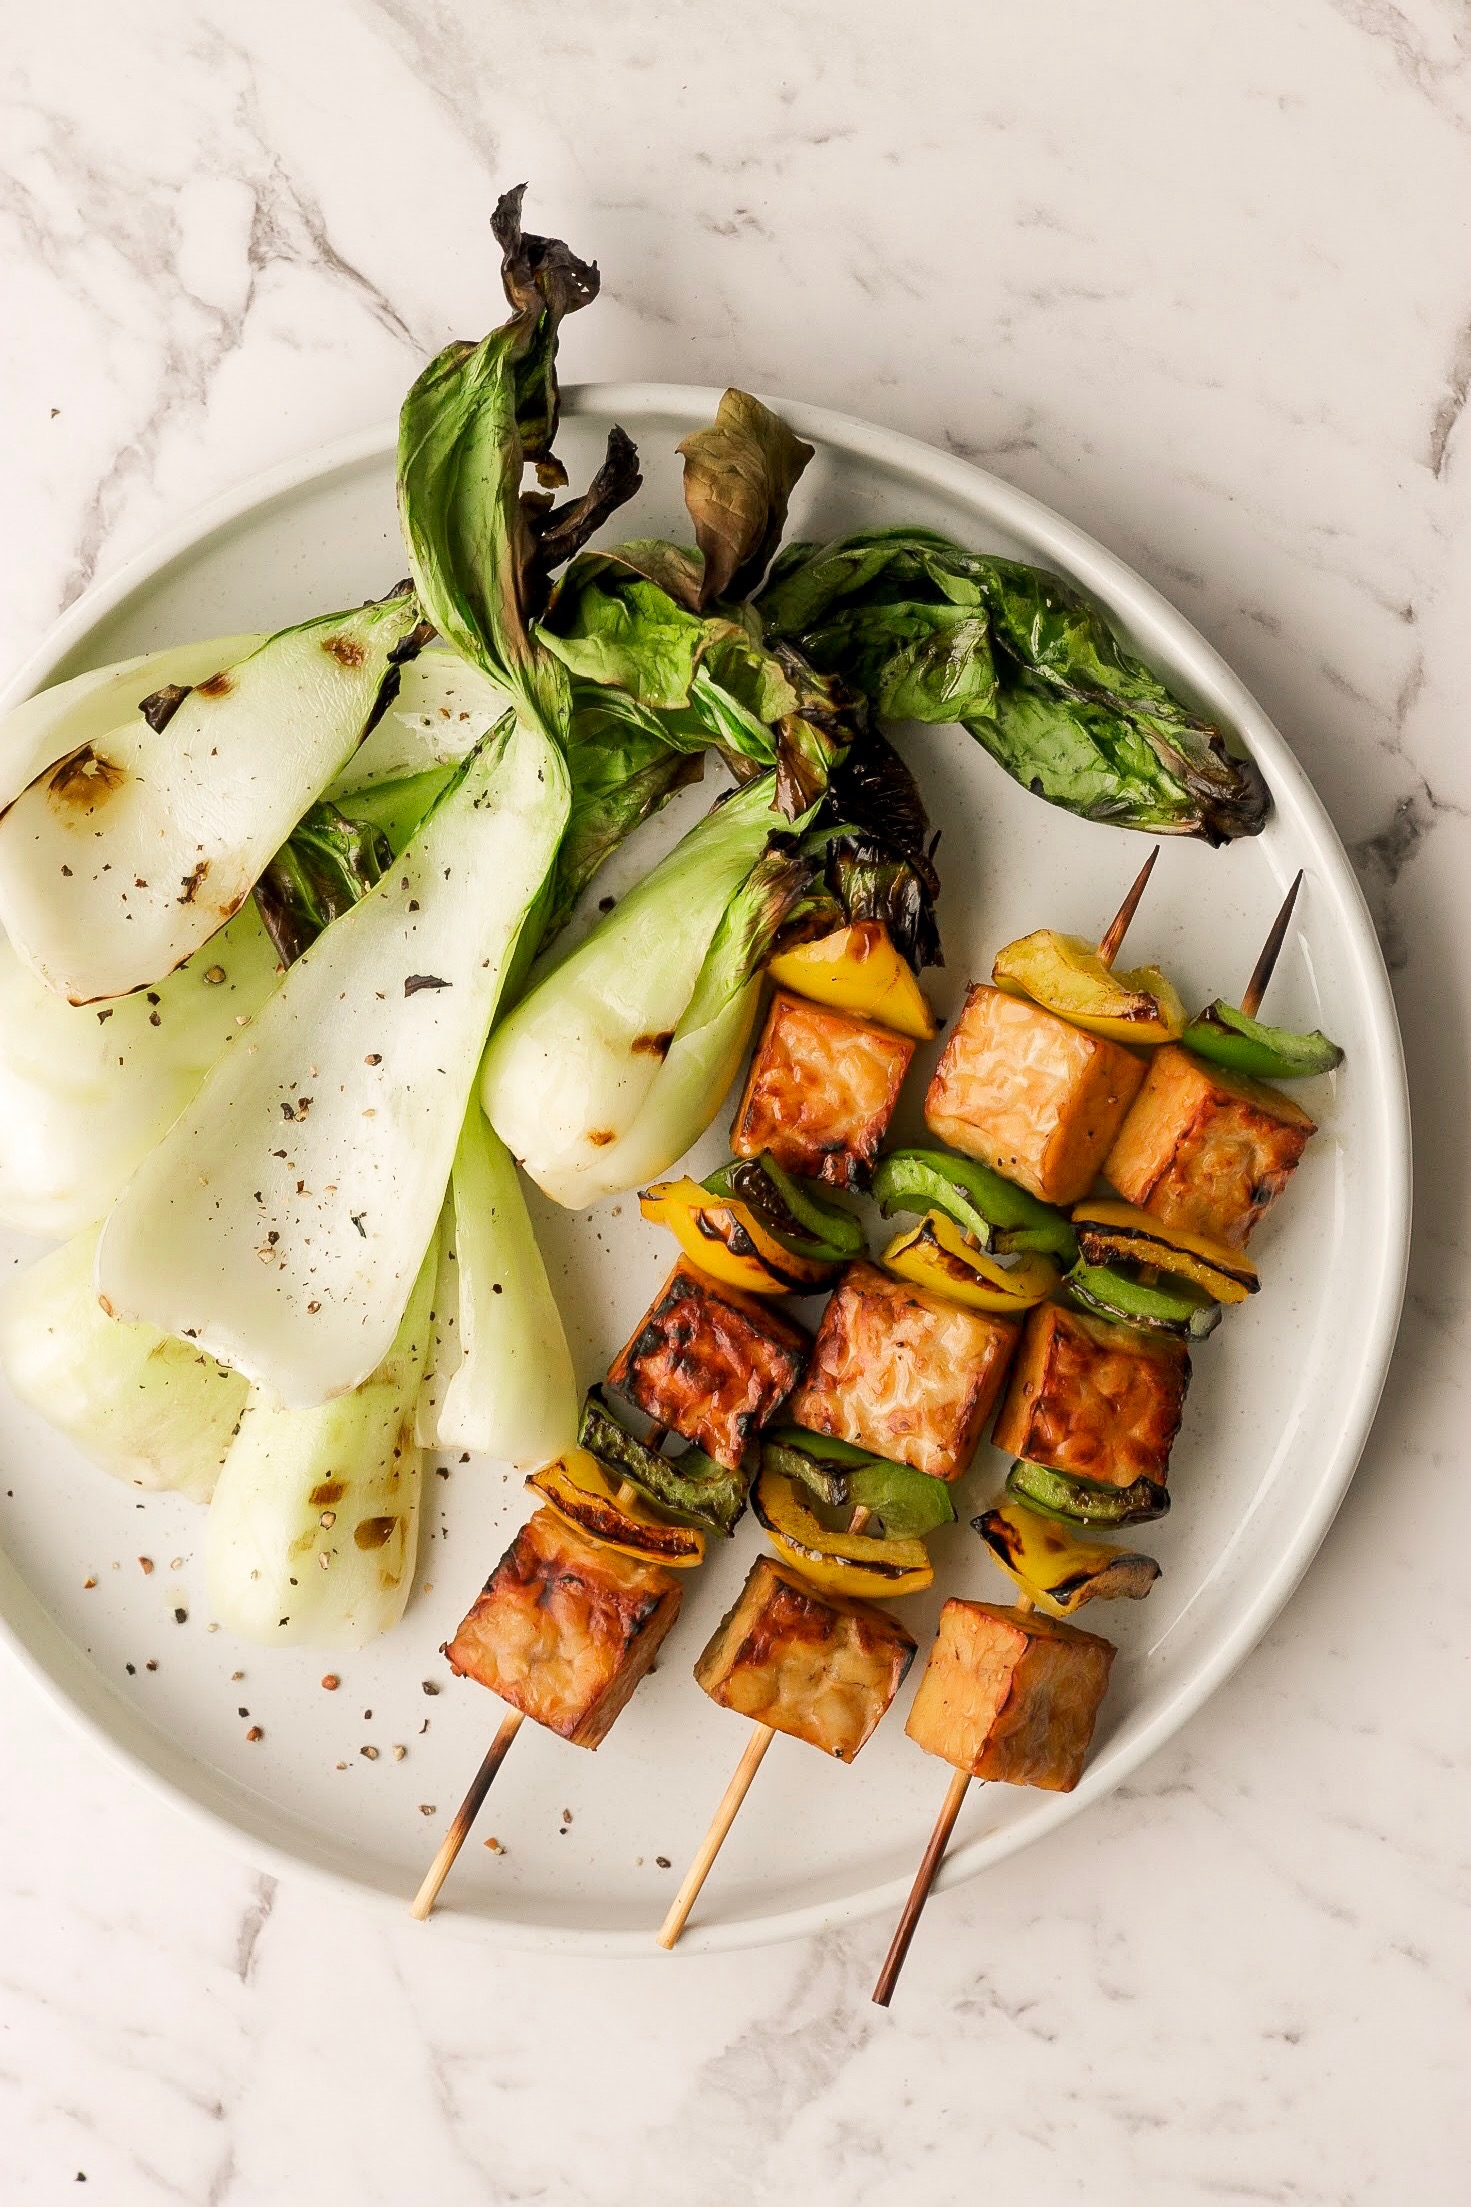 Recipe: Tempeh Kebabs with Bell Peppers and Bok Choy